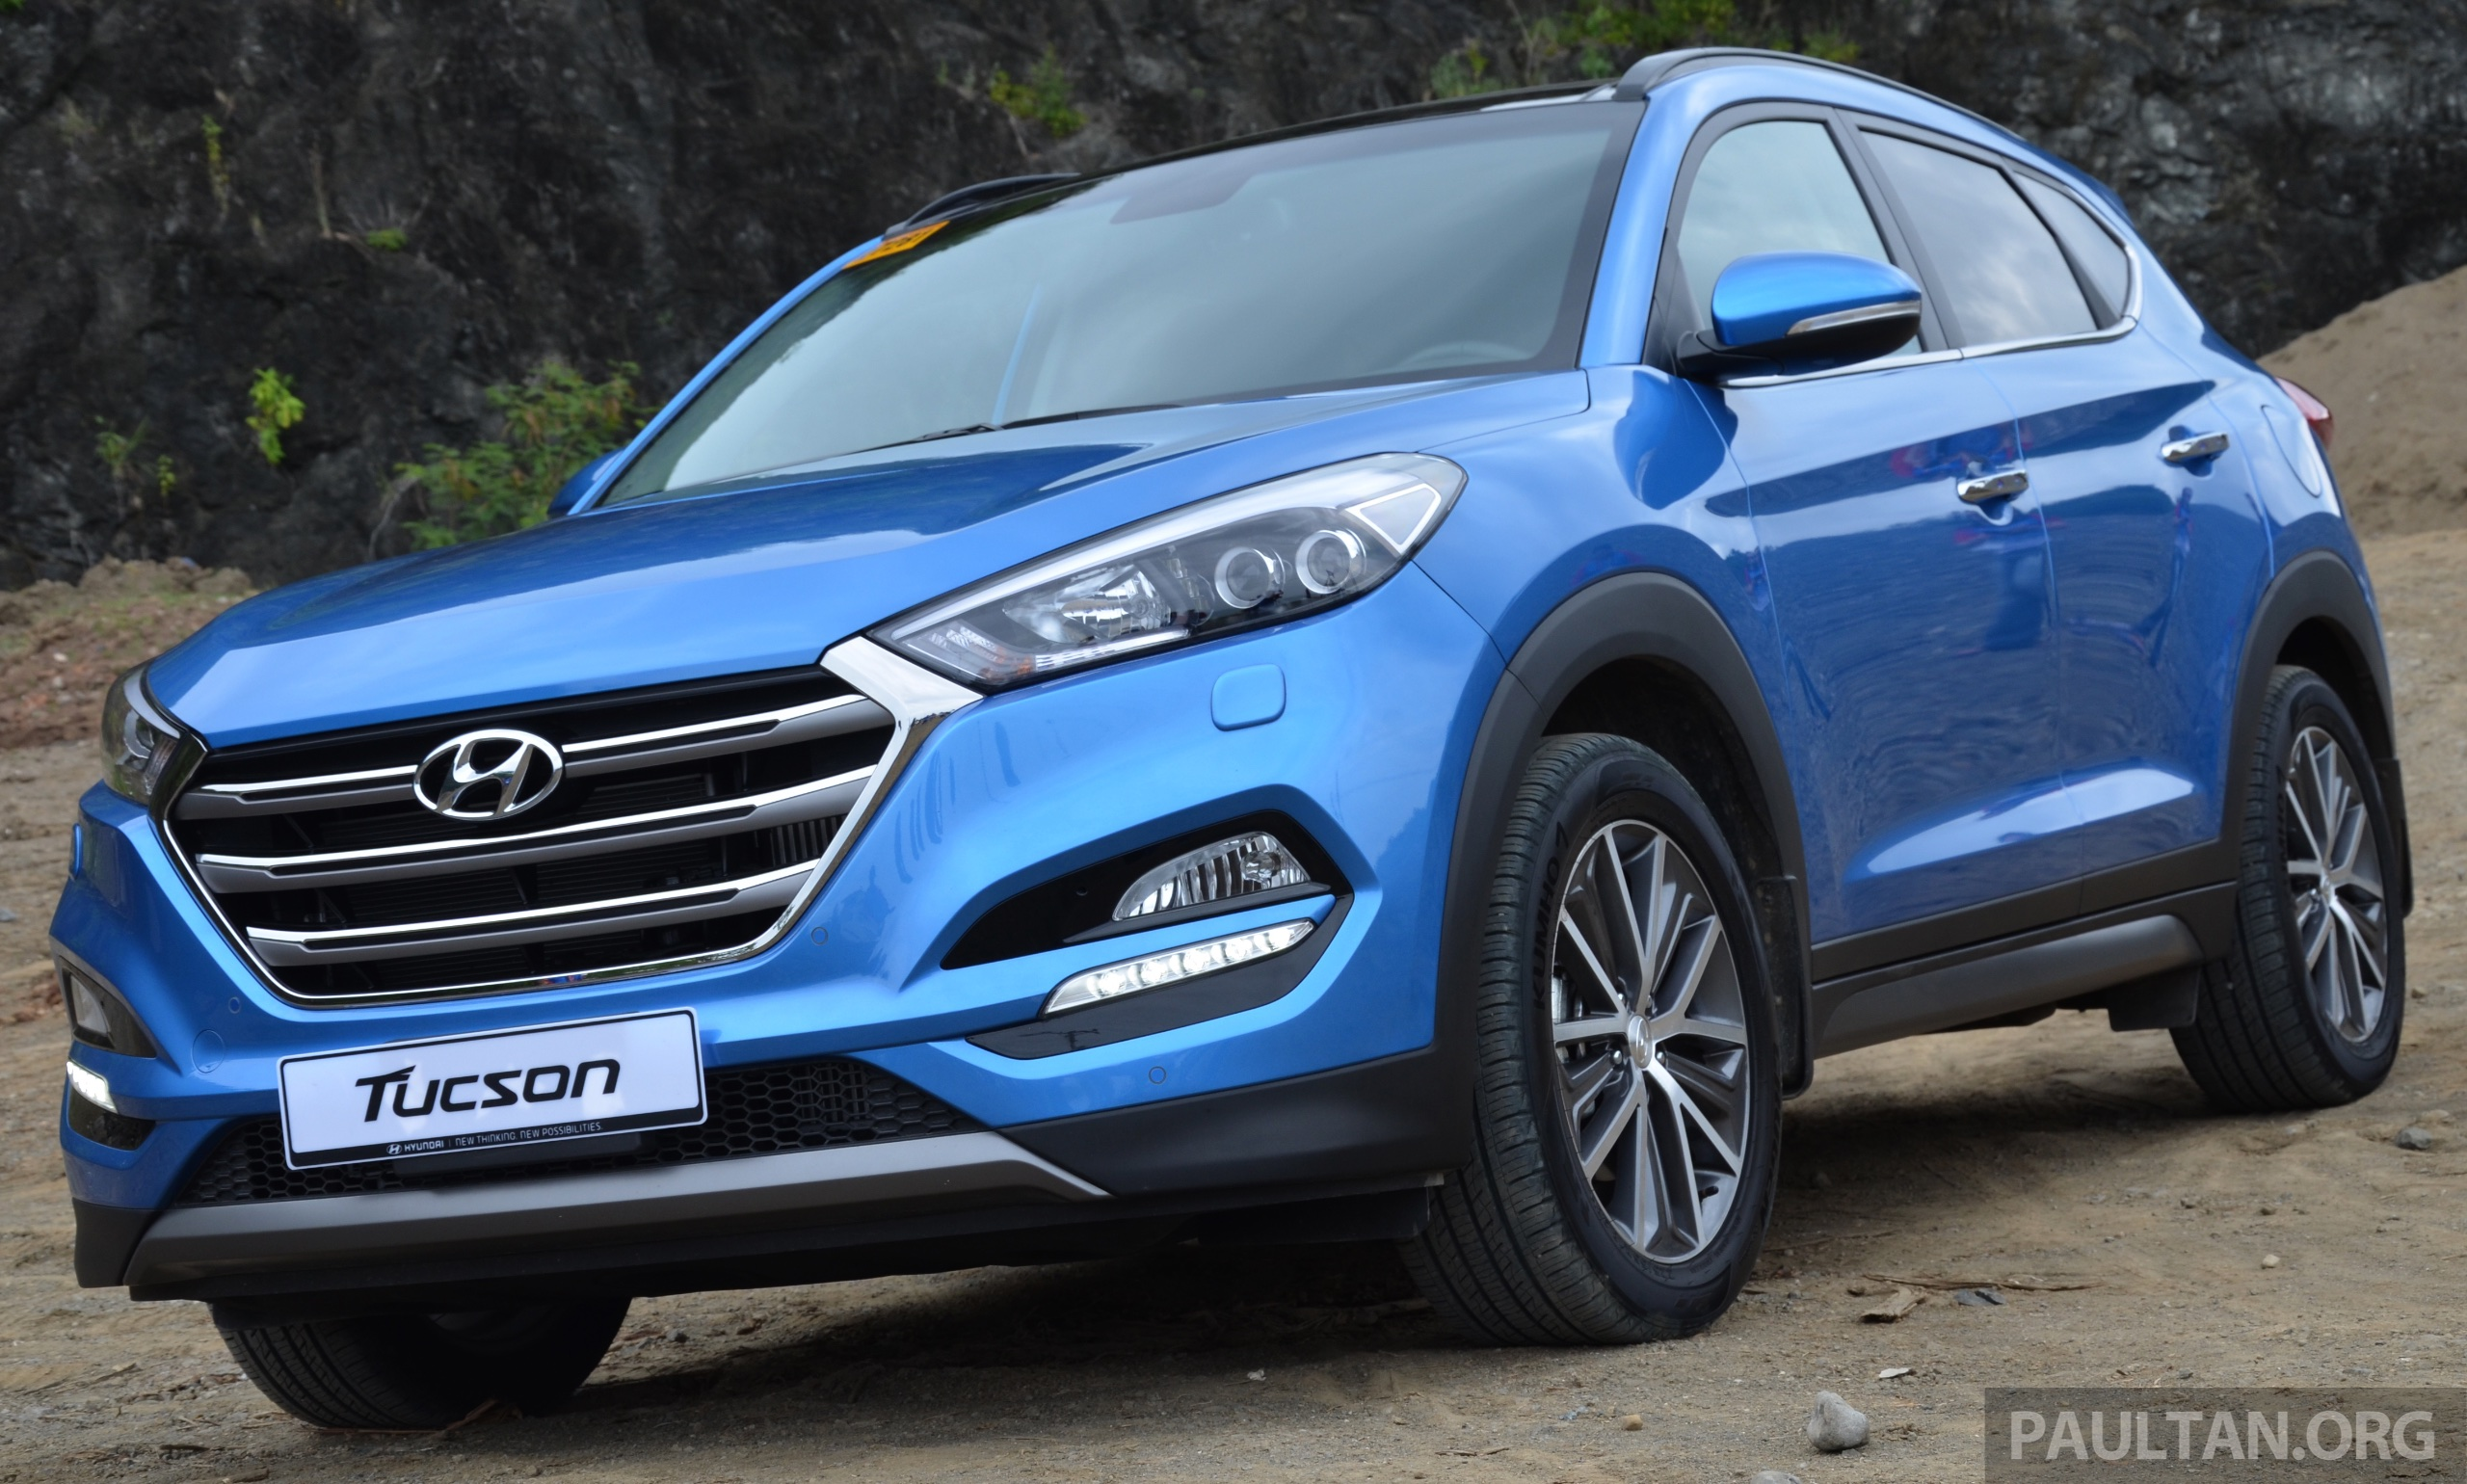 driven 2016 hyundai tucson tried in the philippines. Black Bedroom Furniture Sets. Home Design Ideas